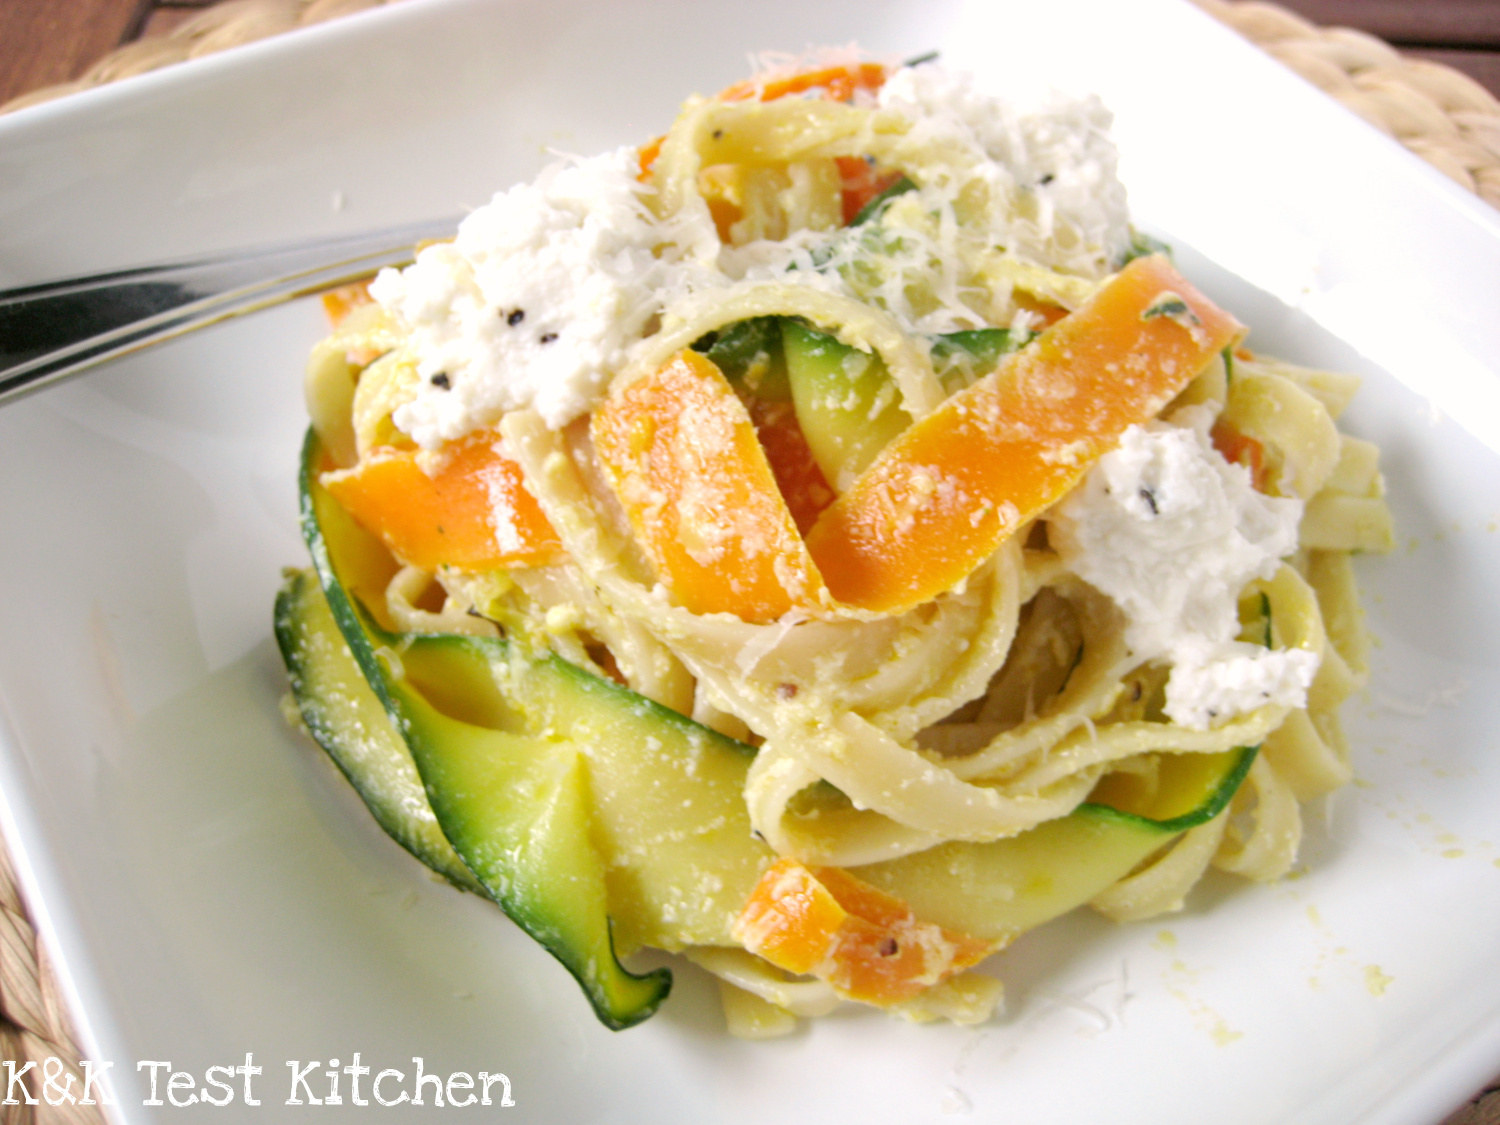 Test Kitchen: Zucchini and Carrot Ribbon Pasta